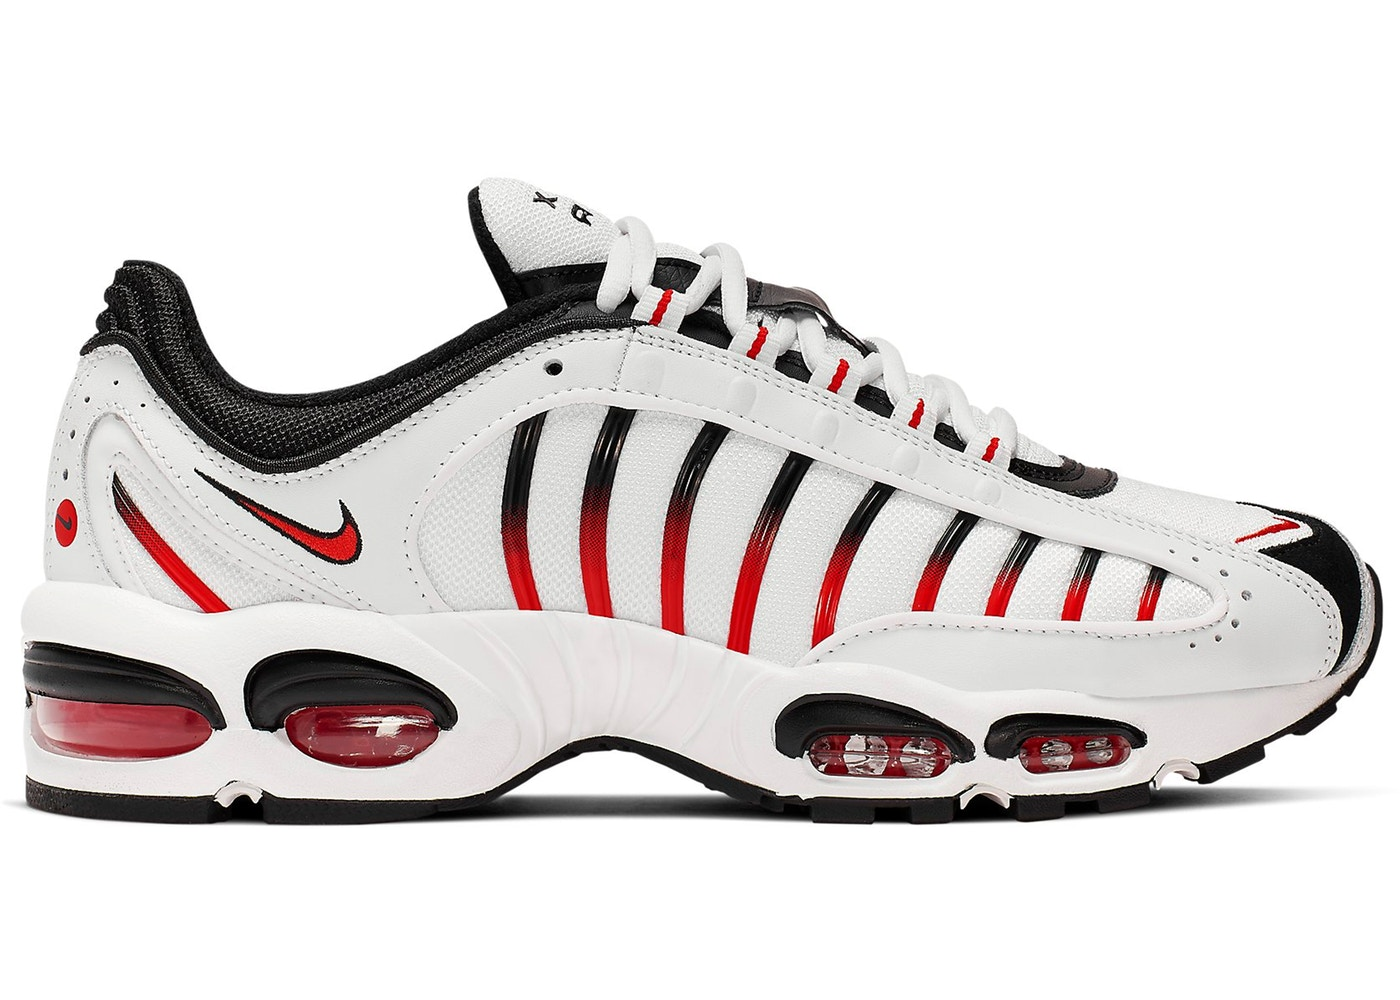 9d871db8 Sell. or Ask. Size: 9.5. View All Bids. Air Max Tailwind 4 ...